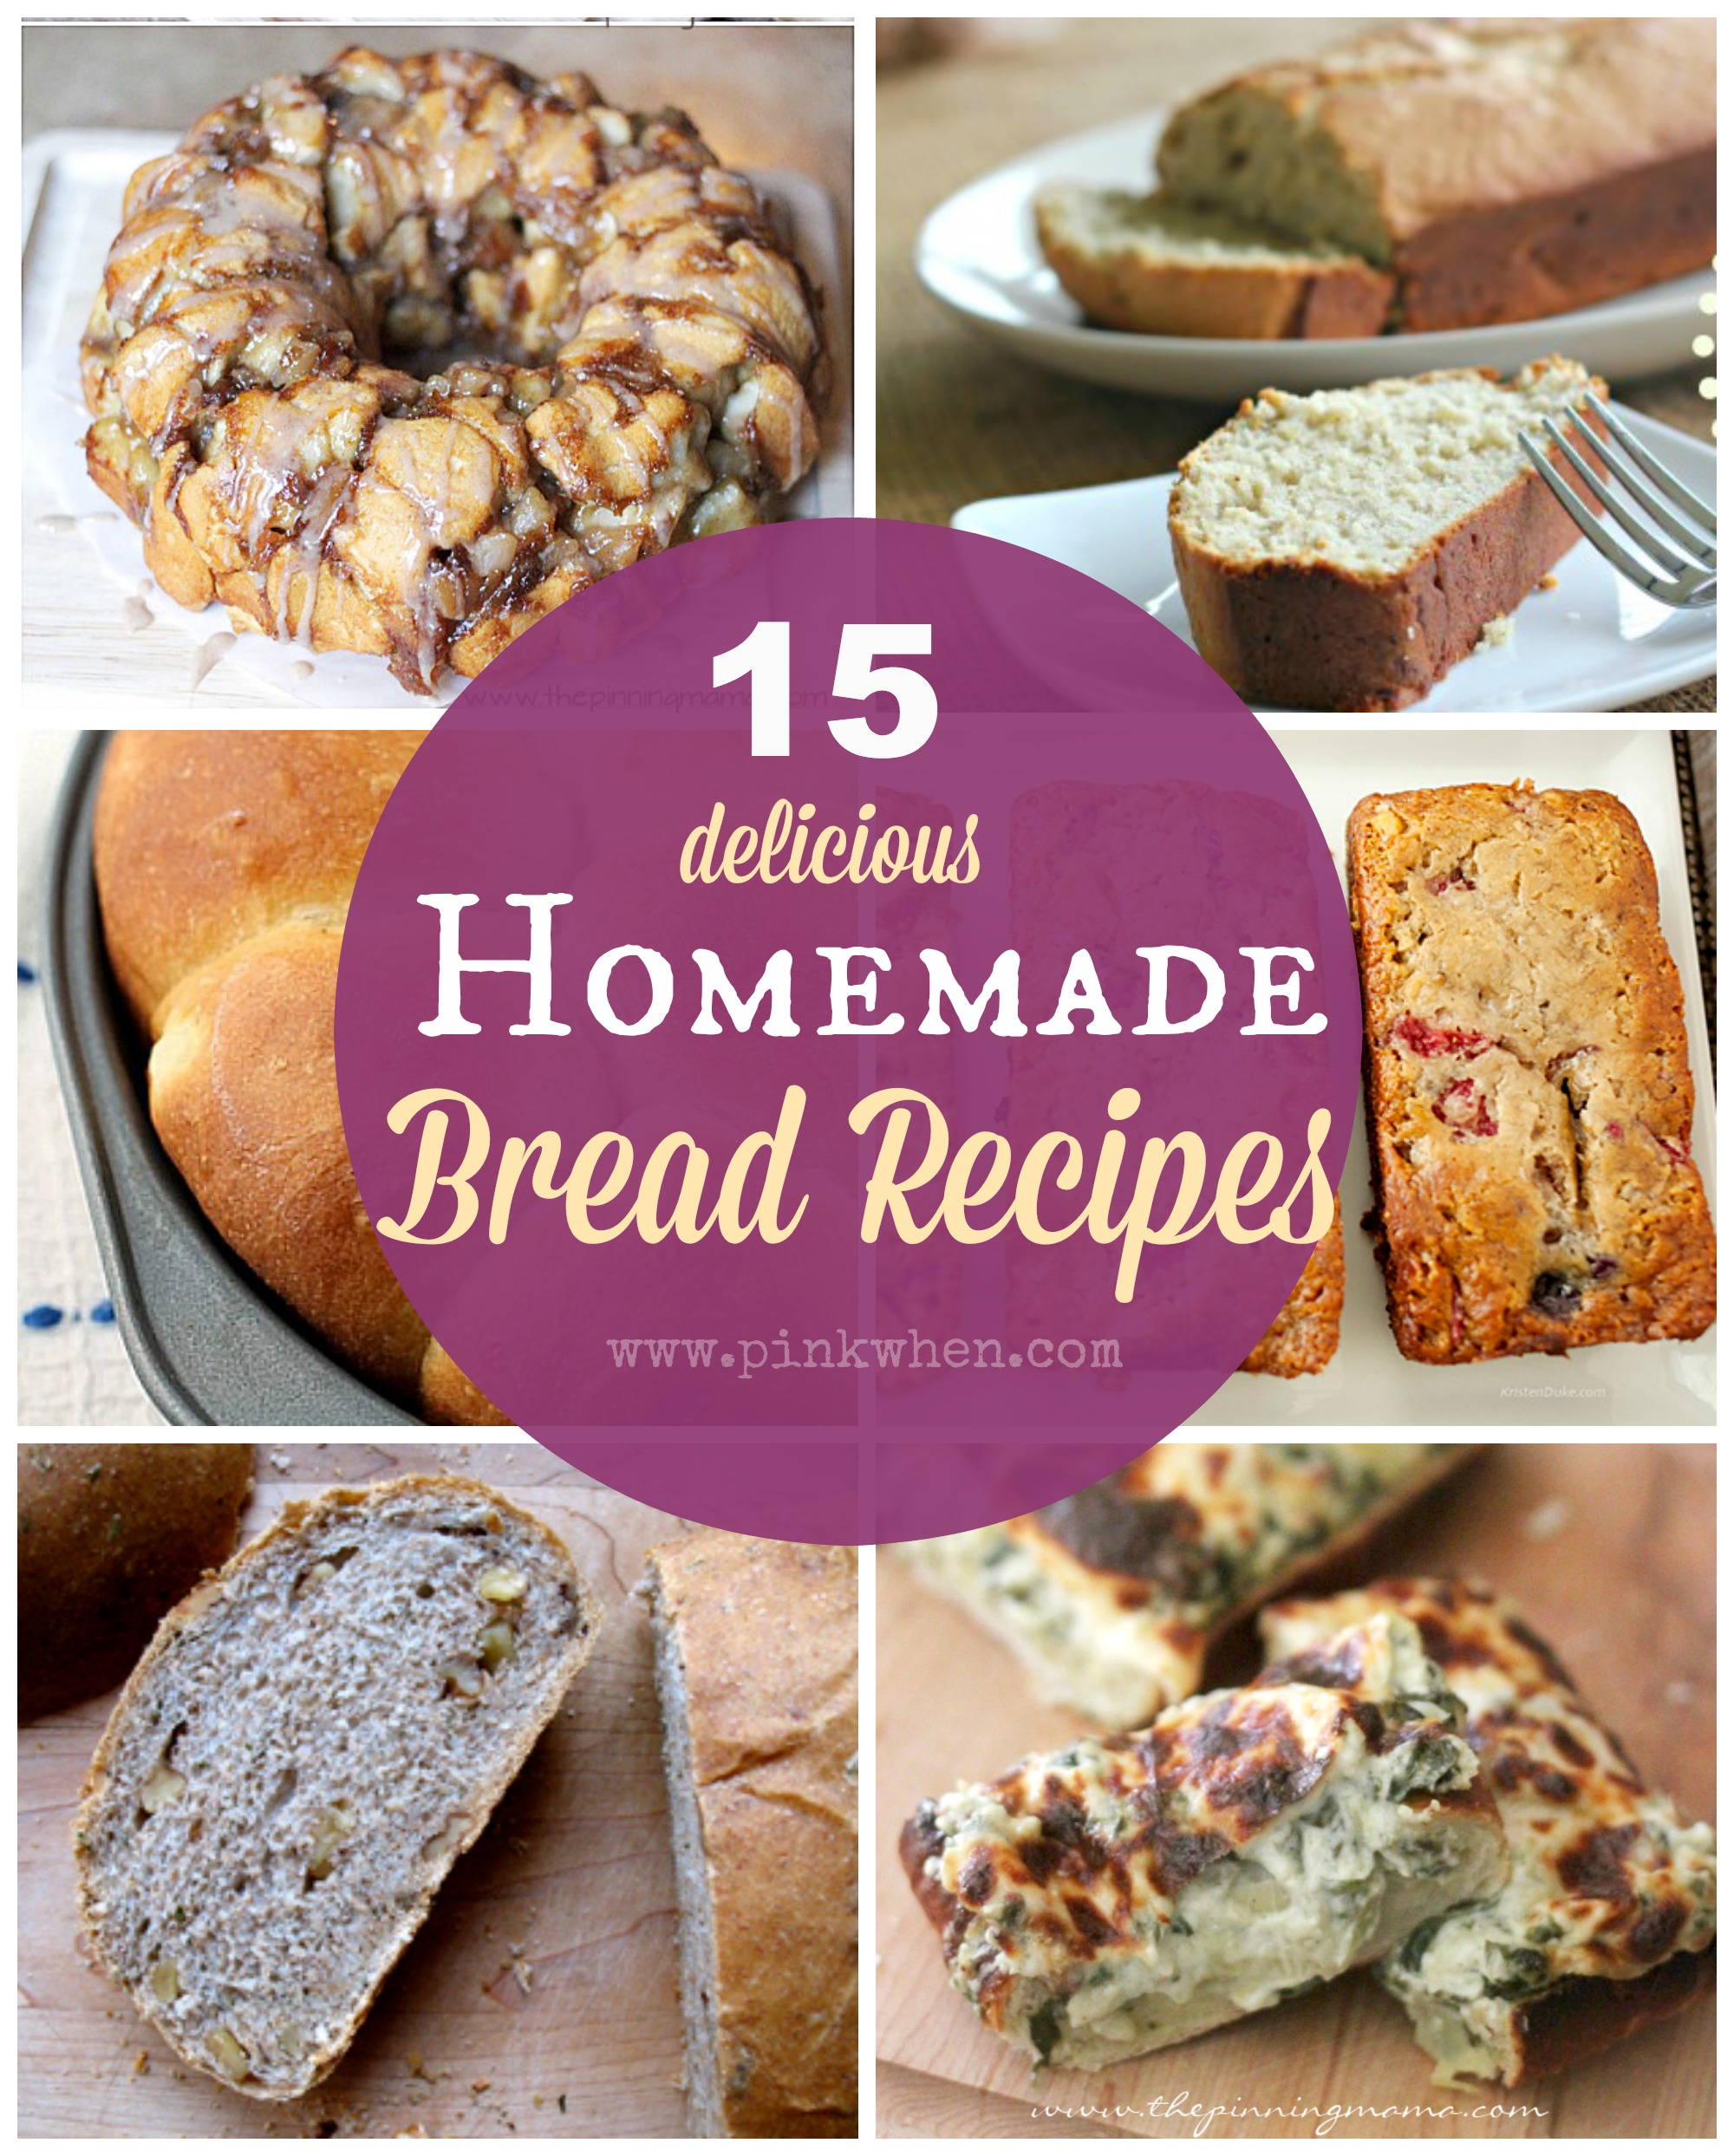 15-delicious-Homemade-Bread-Recipes-via-PinkWhen.com_